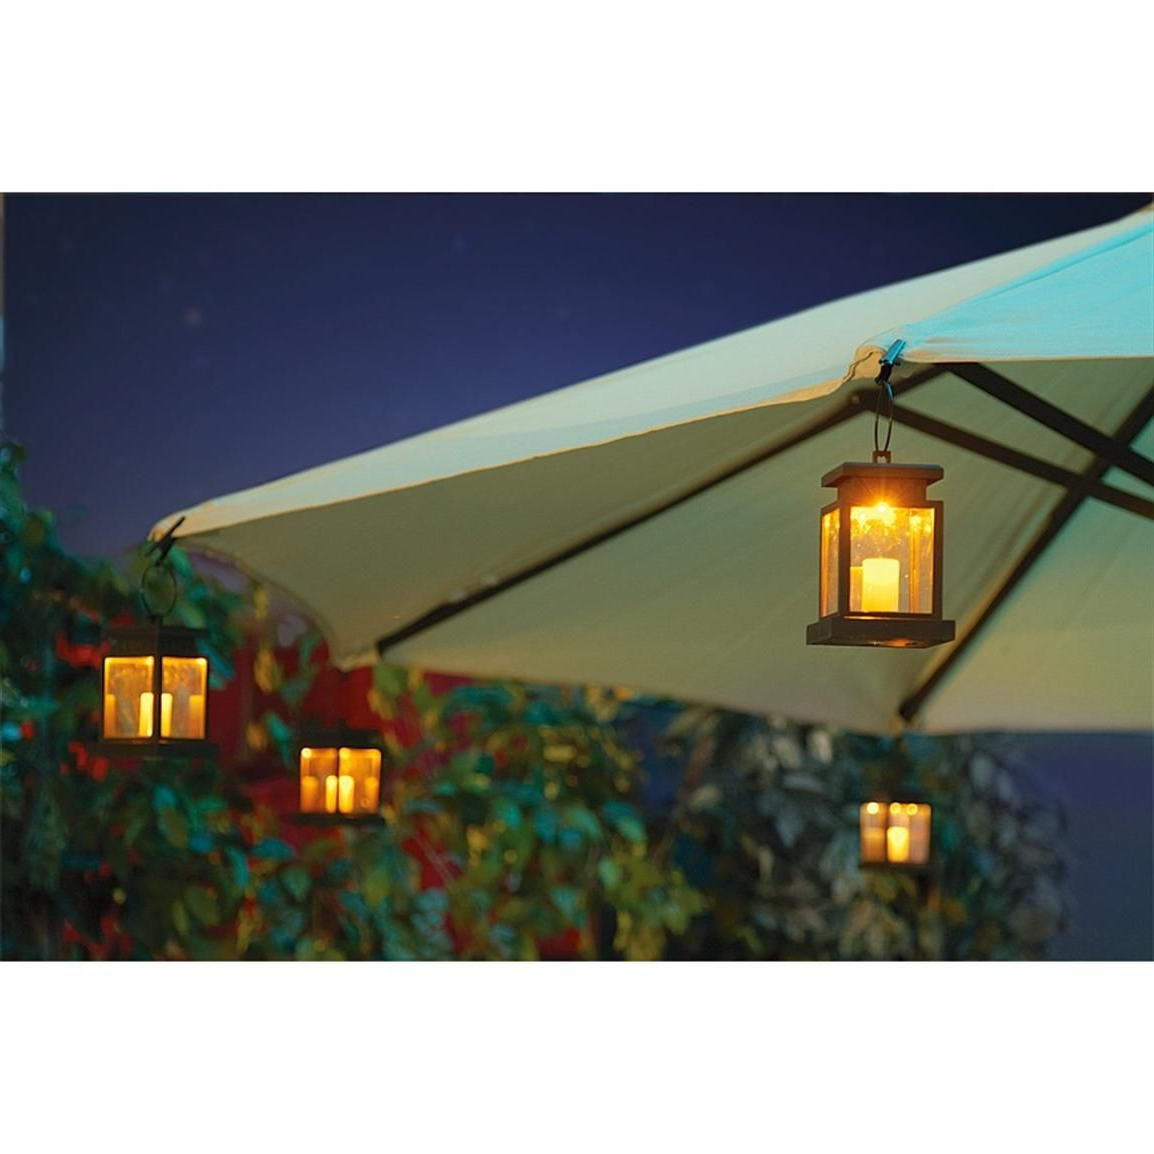 Solar Lights For Patio Umbrellas Pertaining To Popular 4 – Pk. Of Solar Patio Umbrella Clip Lights (View 14 of 20)